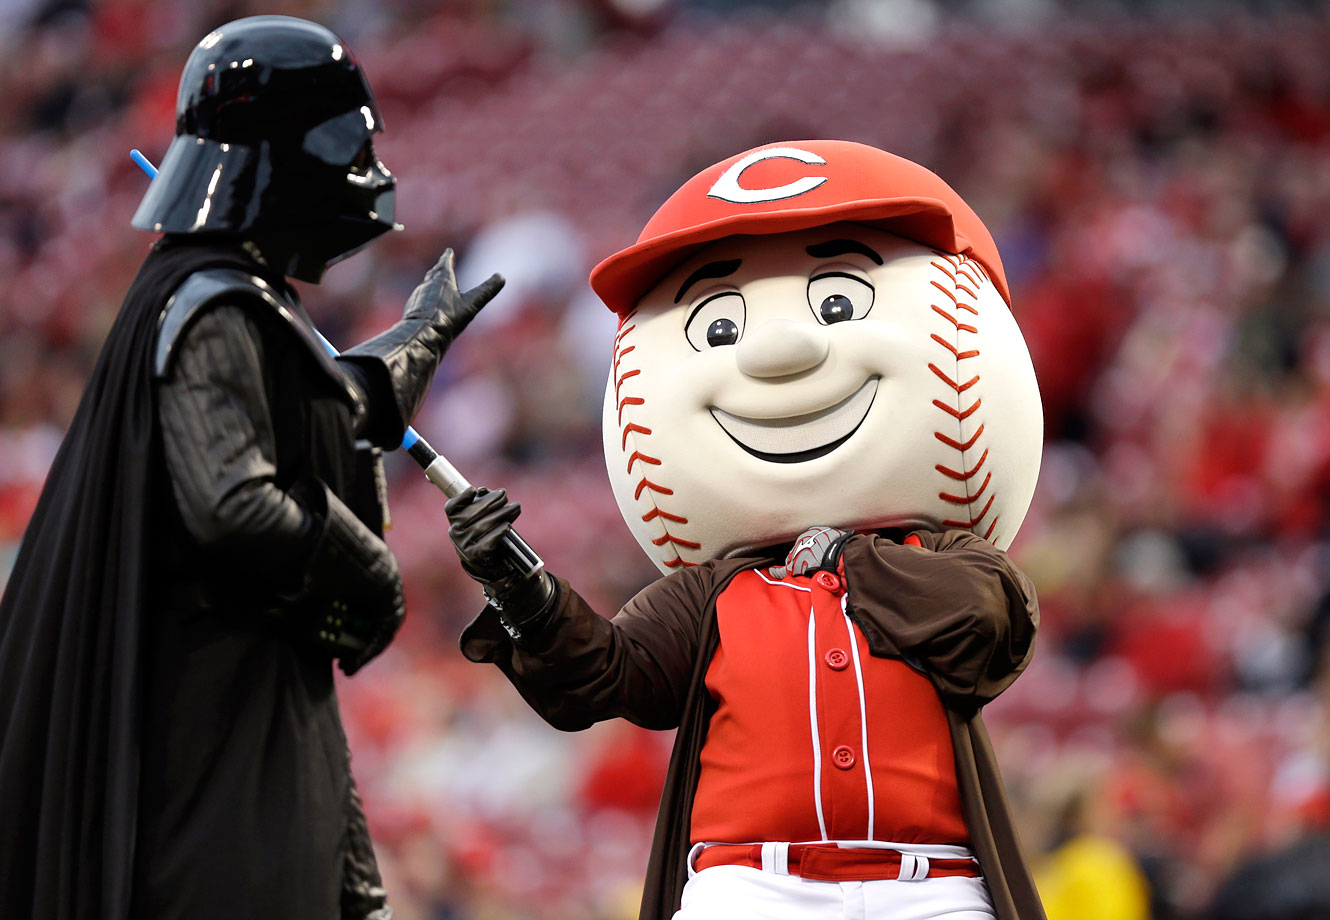 Cincinnati Reds mascot Mr. Red pretends to be choked by Darth Vader prior to the Reds game against the Milwaukee Brewers on May 2, 2014 at Great American Ballpark in Cincinnati.